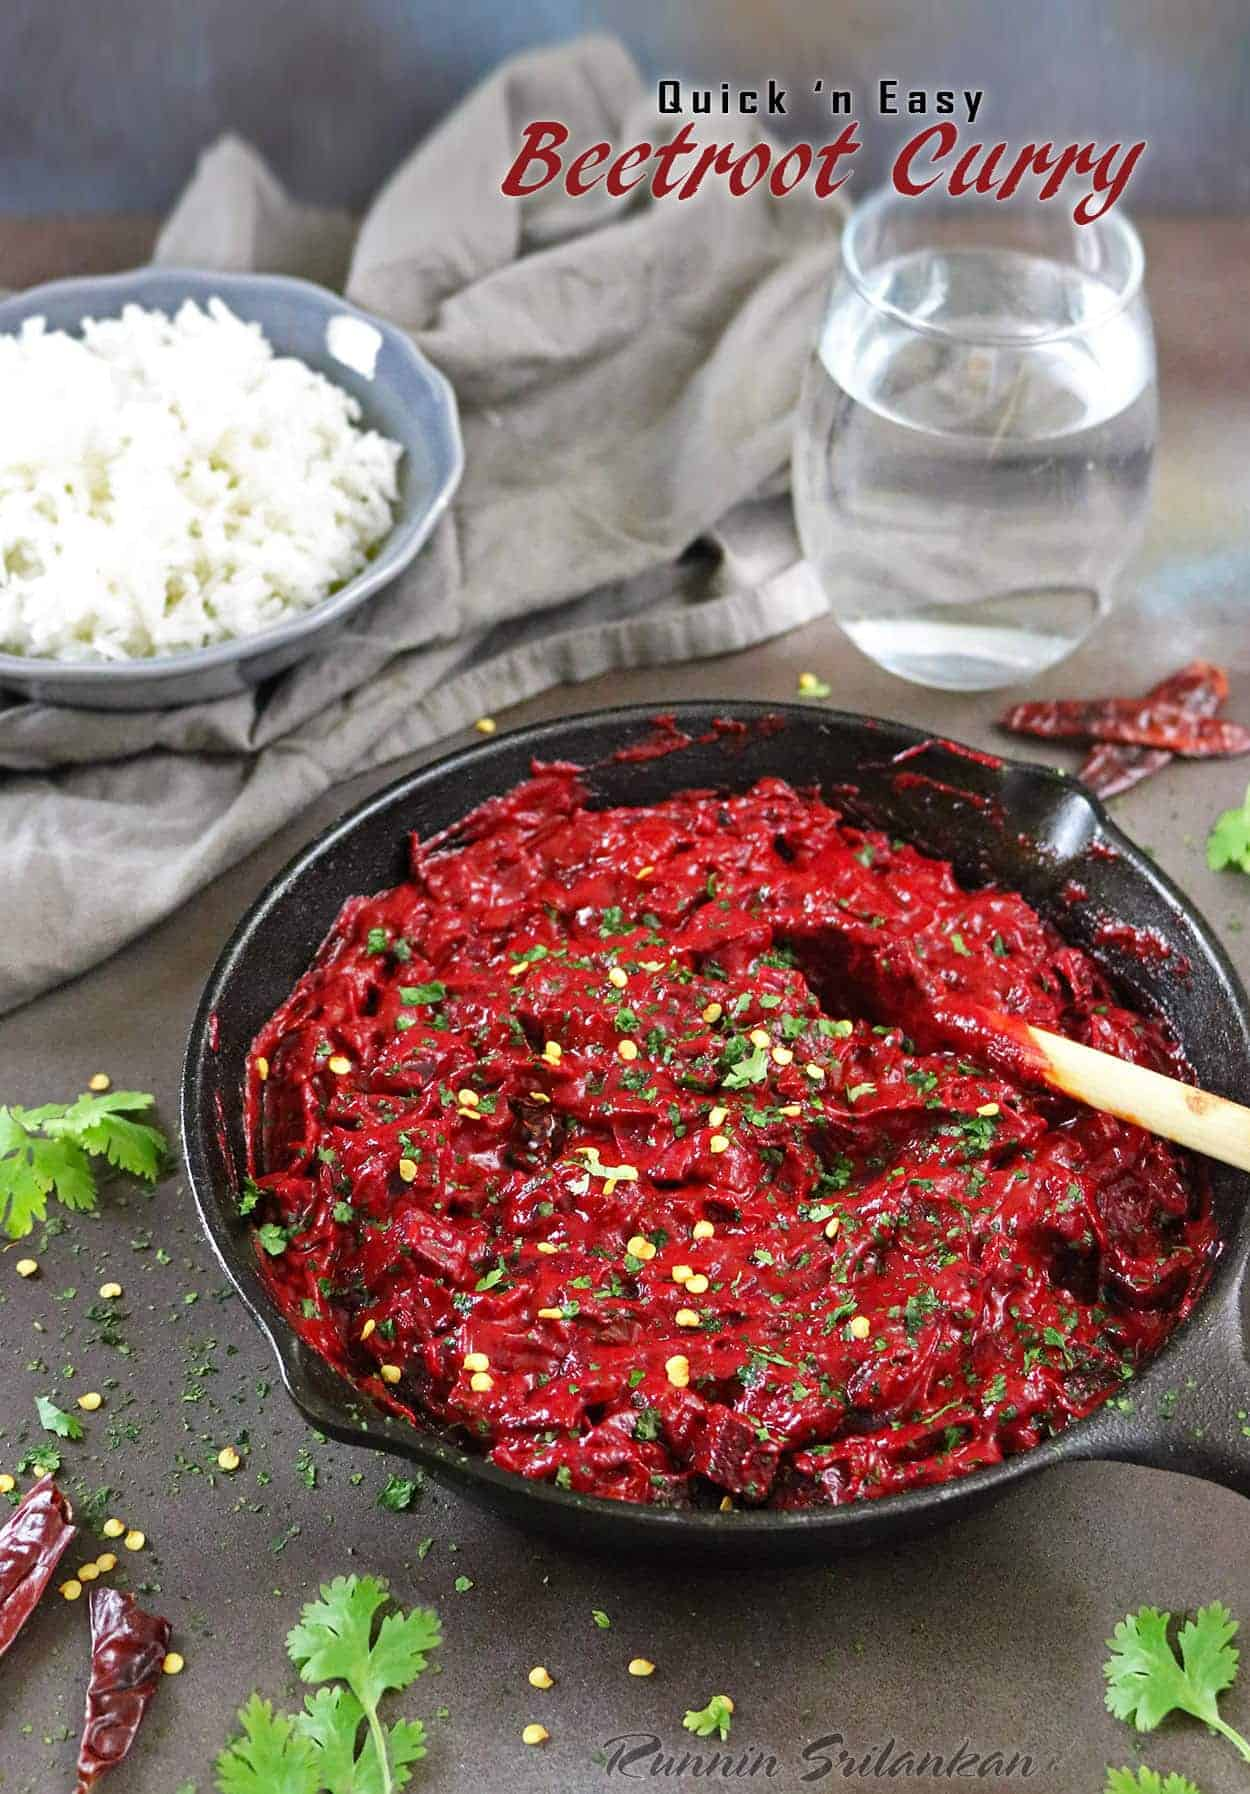 Quick And Easy Beetroot Curry with coconut milk making it velvety smooth. Recipe at RunninSrilankan.com